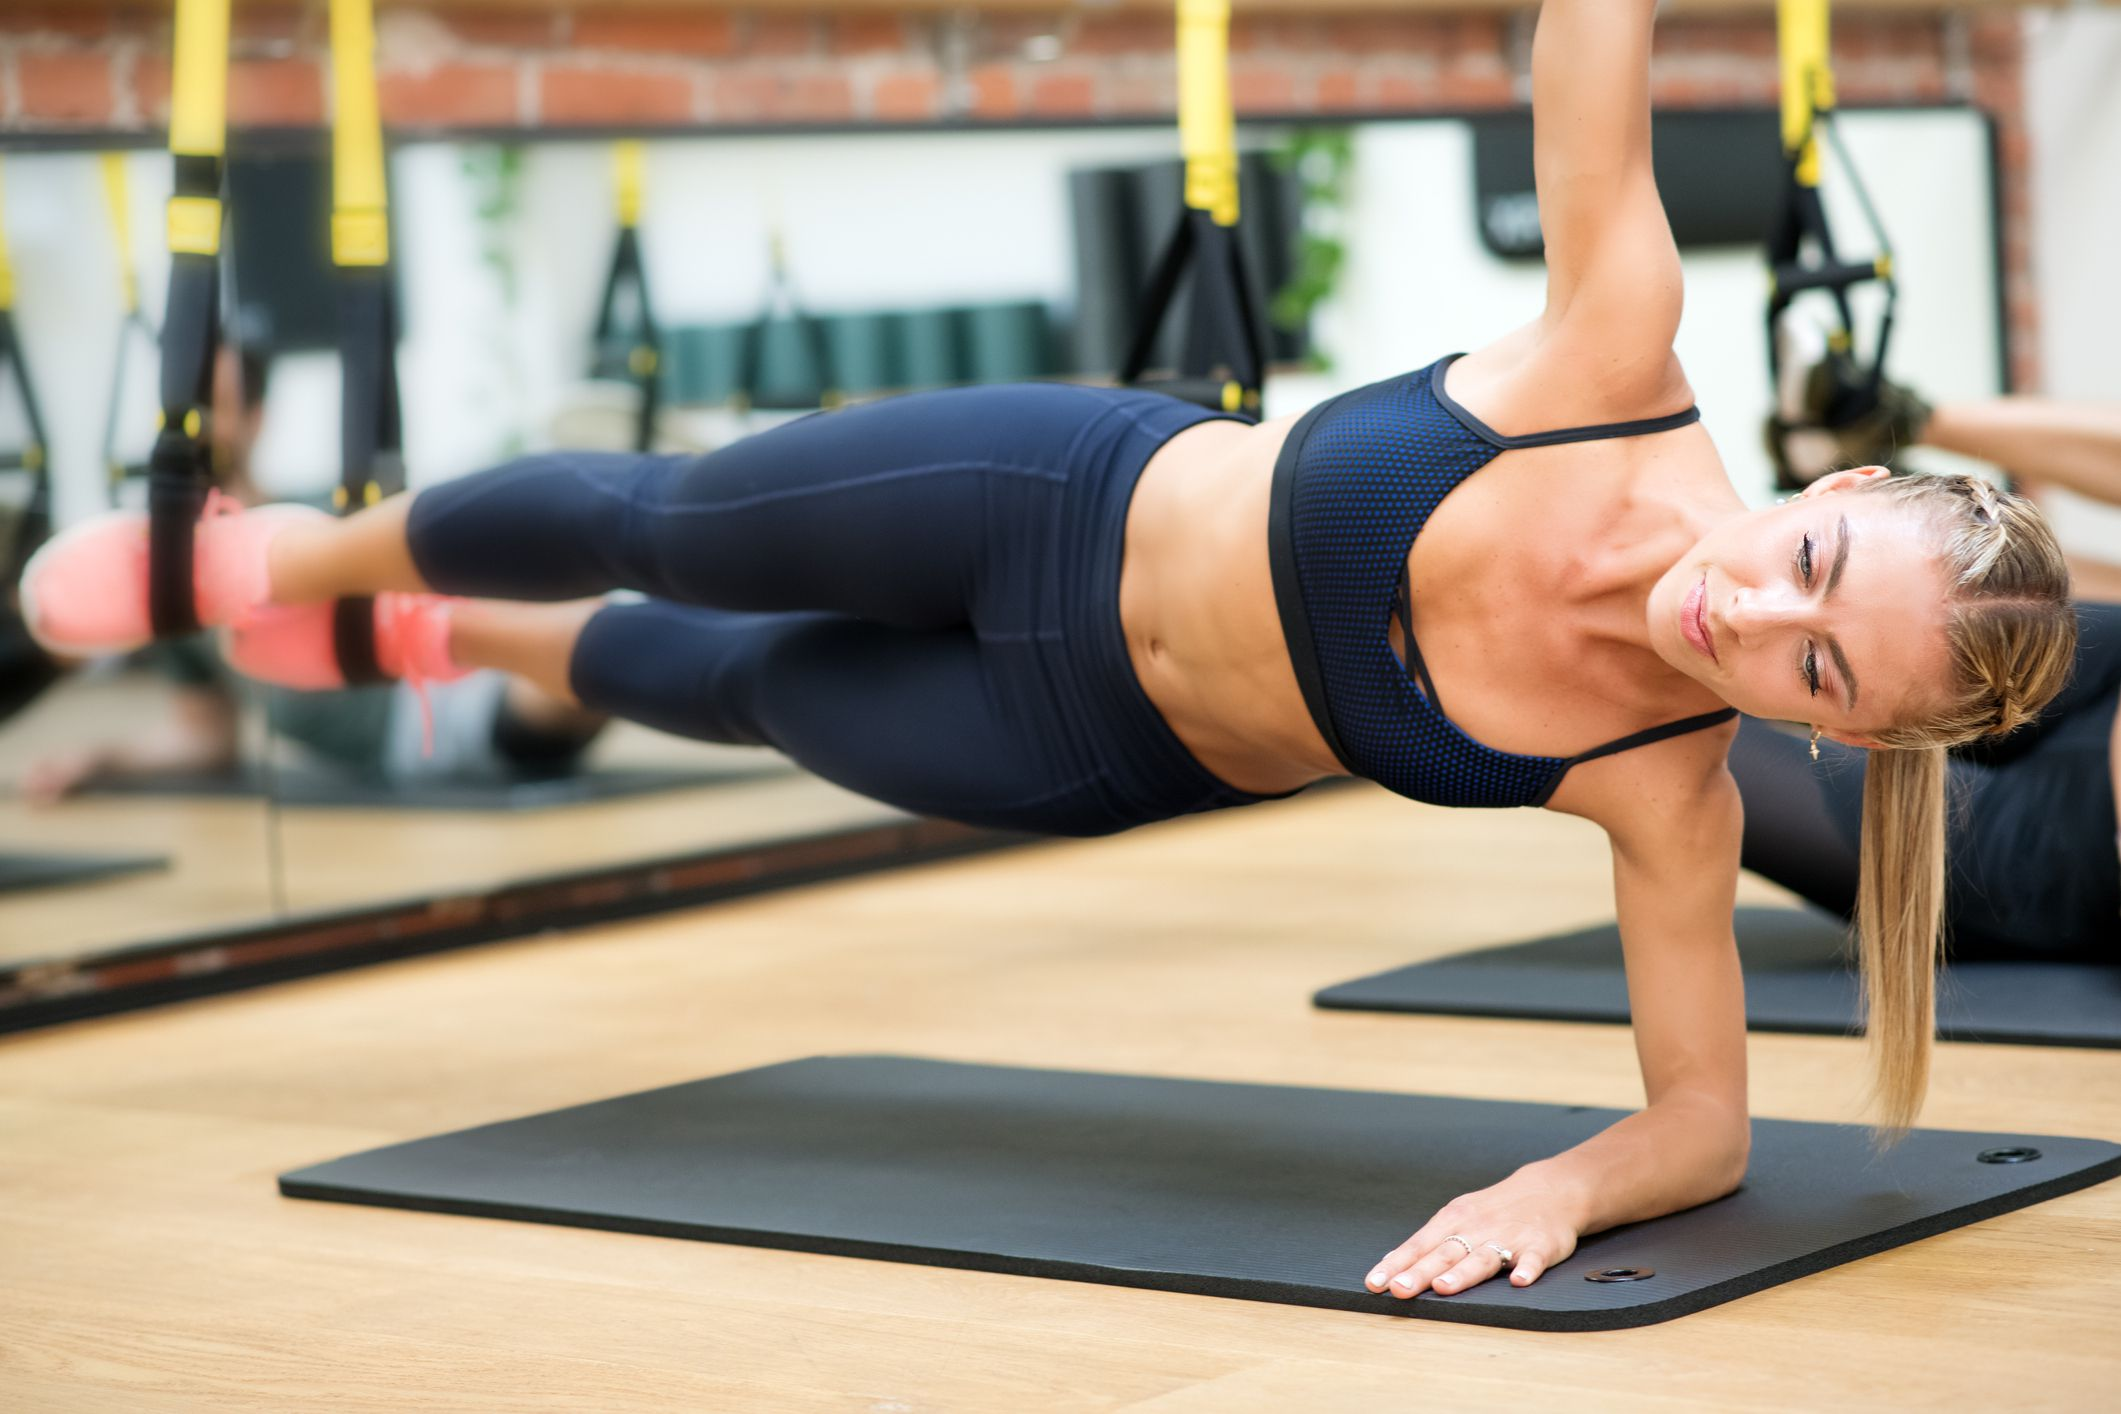 How to Perform the TRX Side Plank